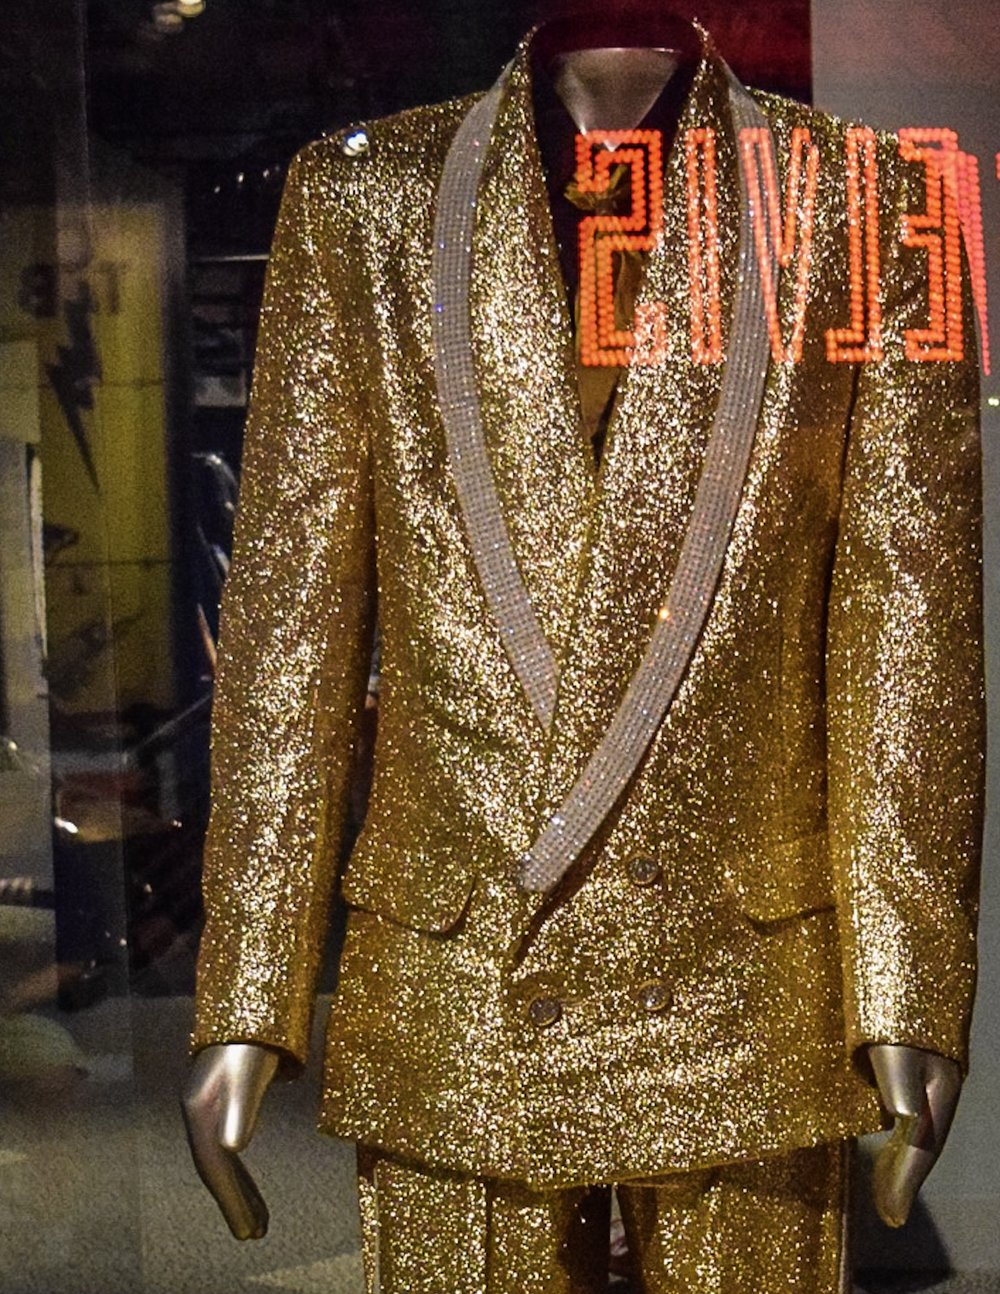 Elvis's suit from the cover of  50,000,000 Elvis Fans Can't Be Wrong